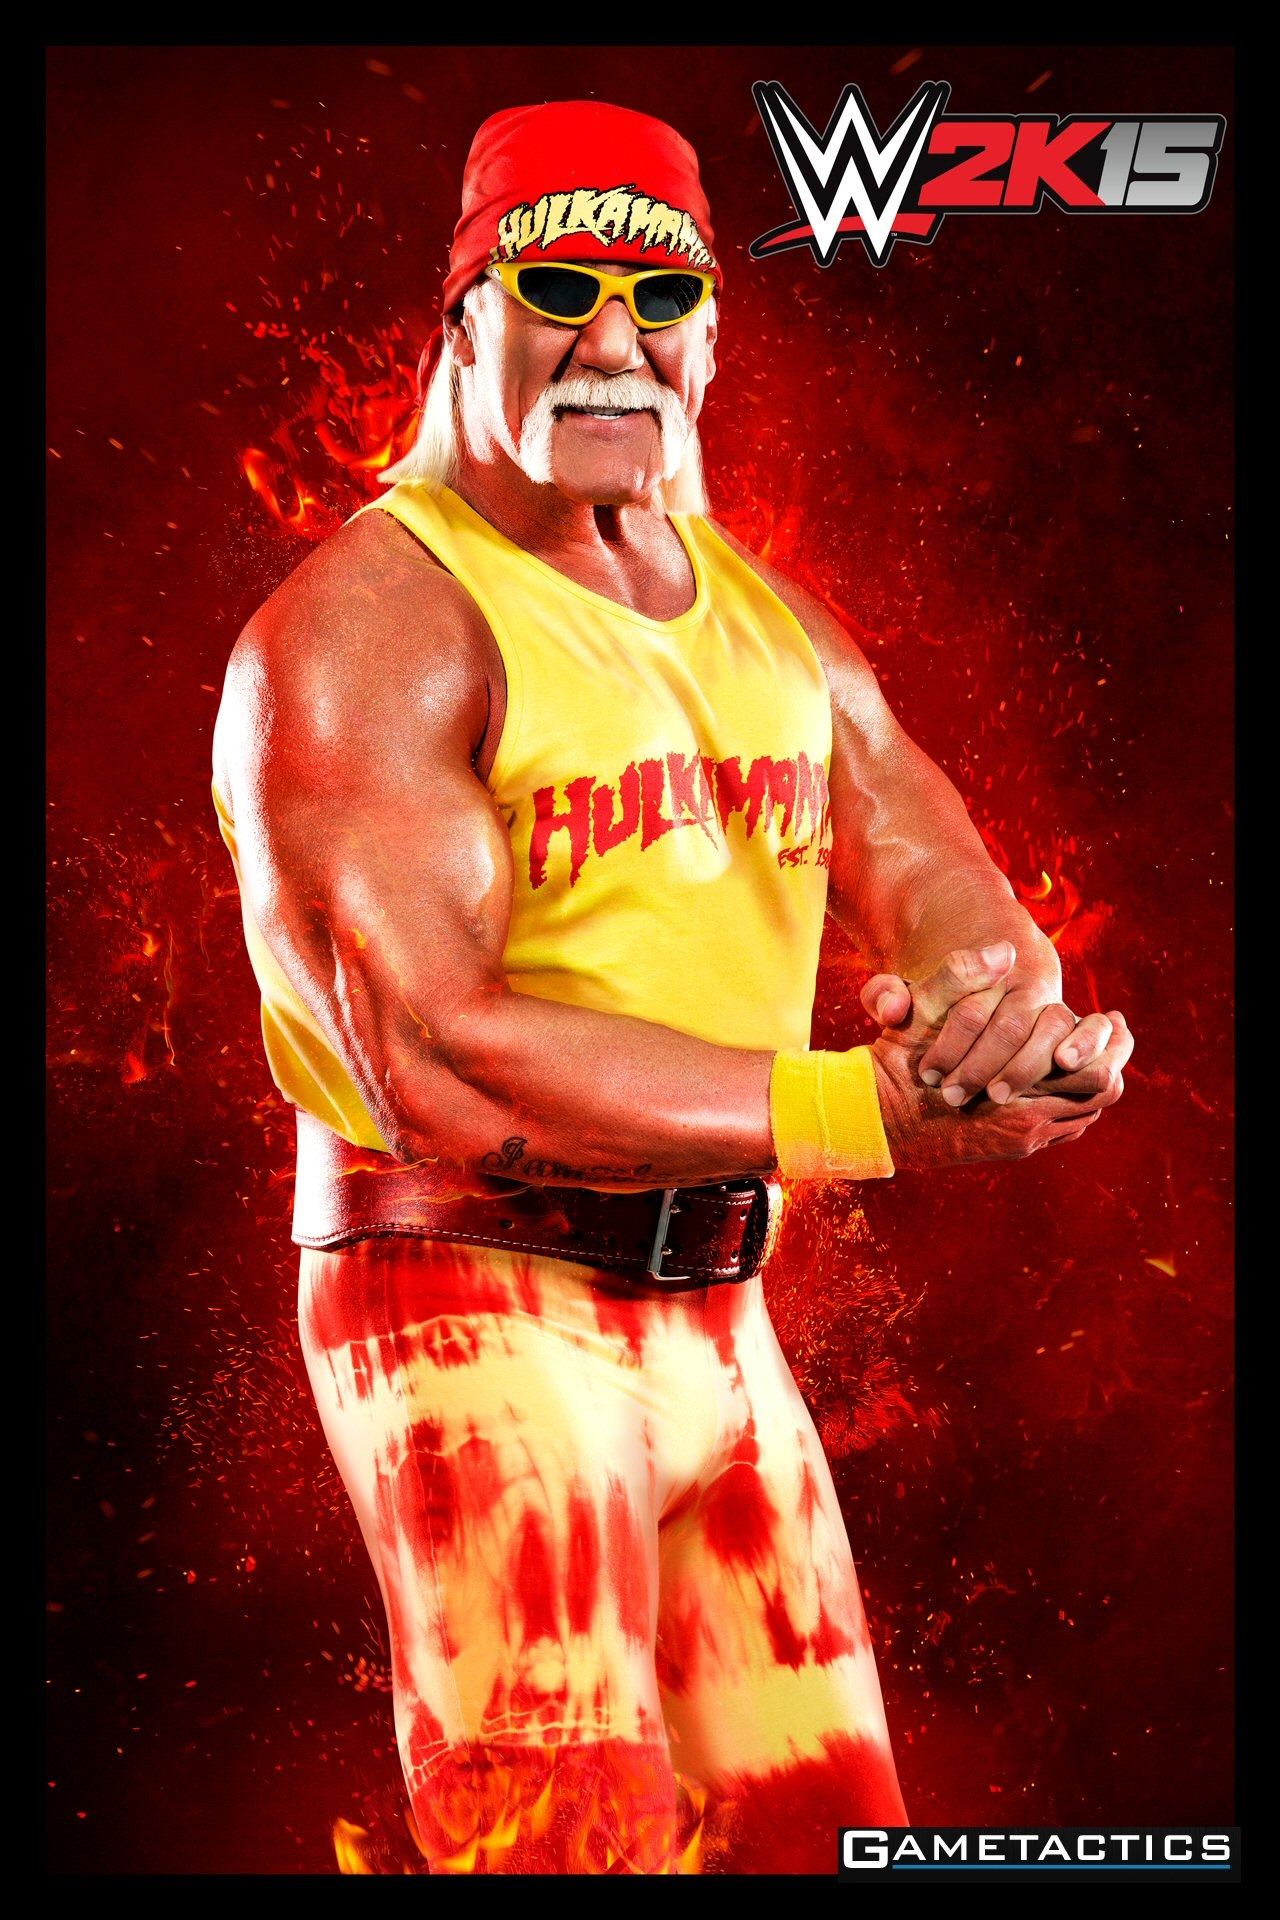 Hulk hogan wallpapers free download - Hulk hd images free download ...